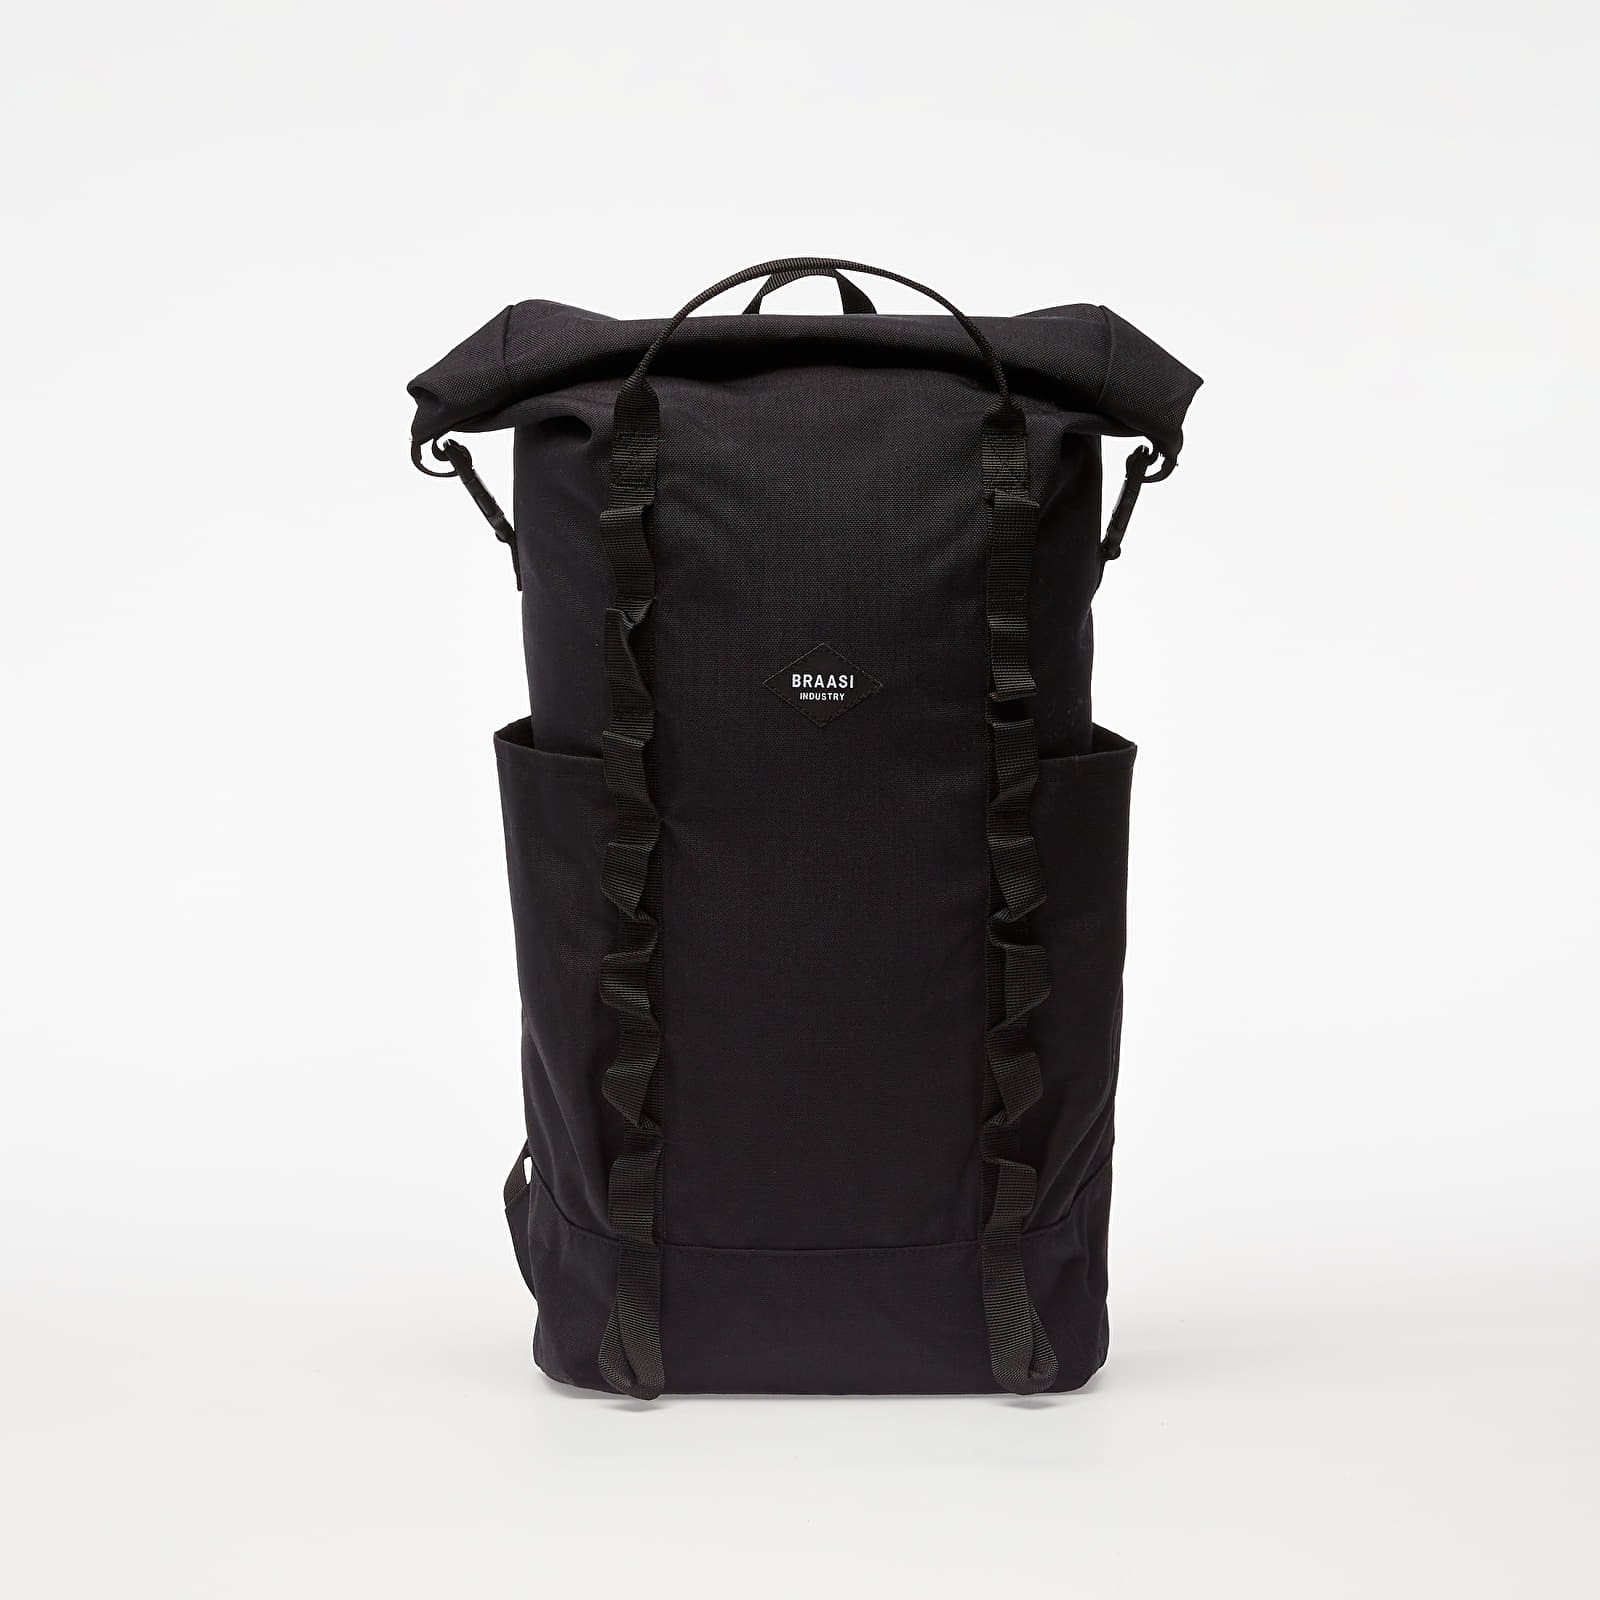 Mochilas Braasi Industry Kira Backpack Black